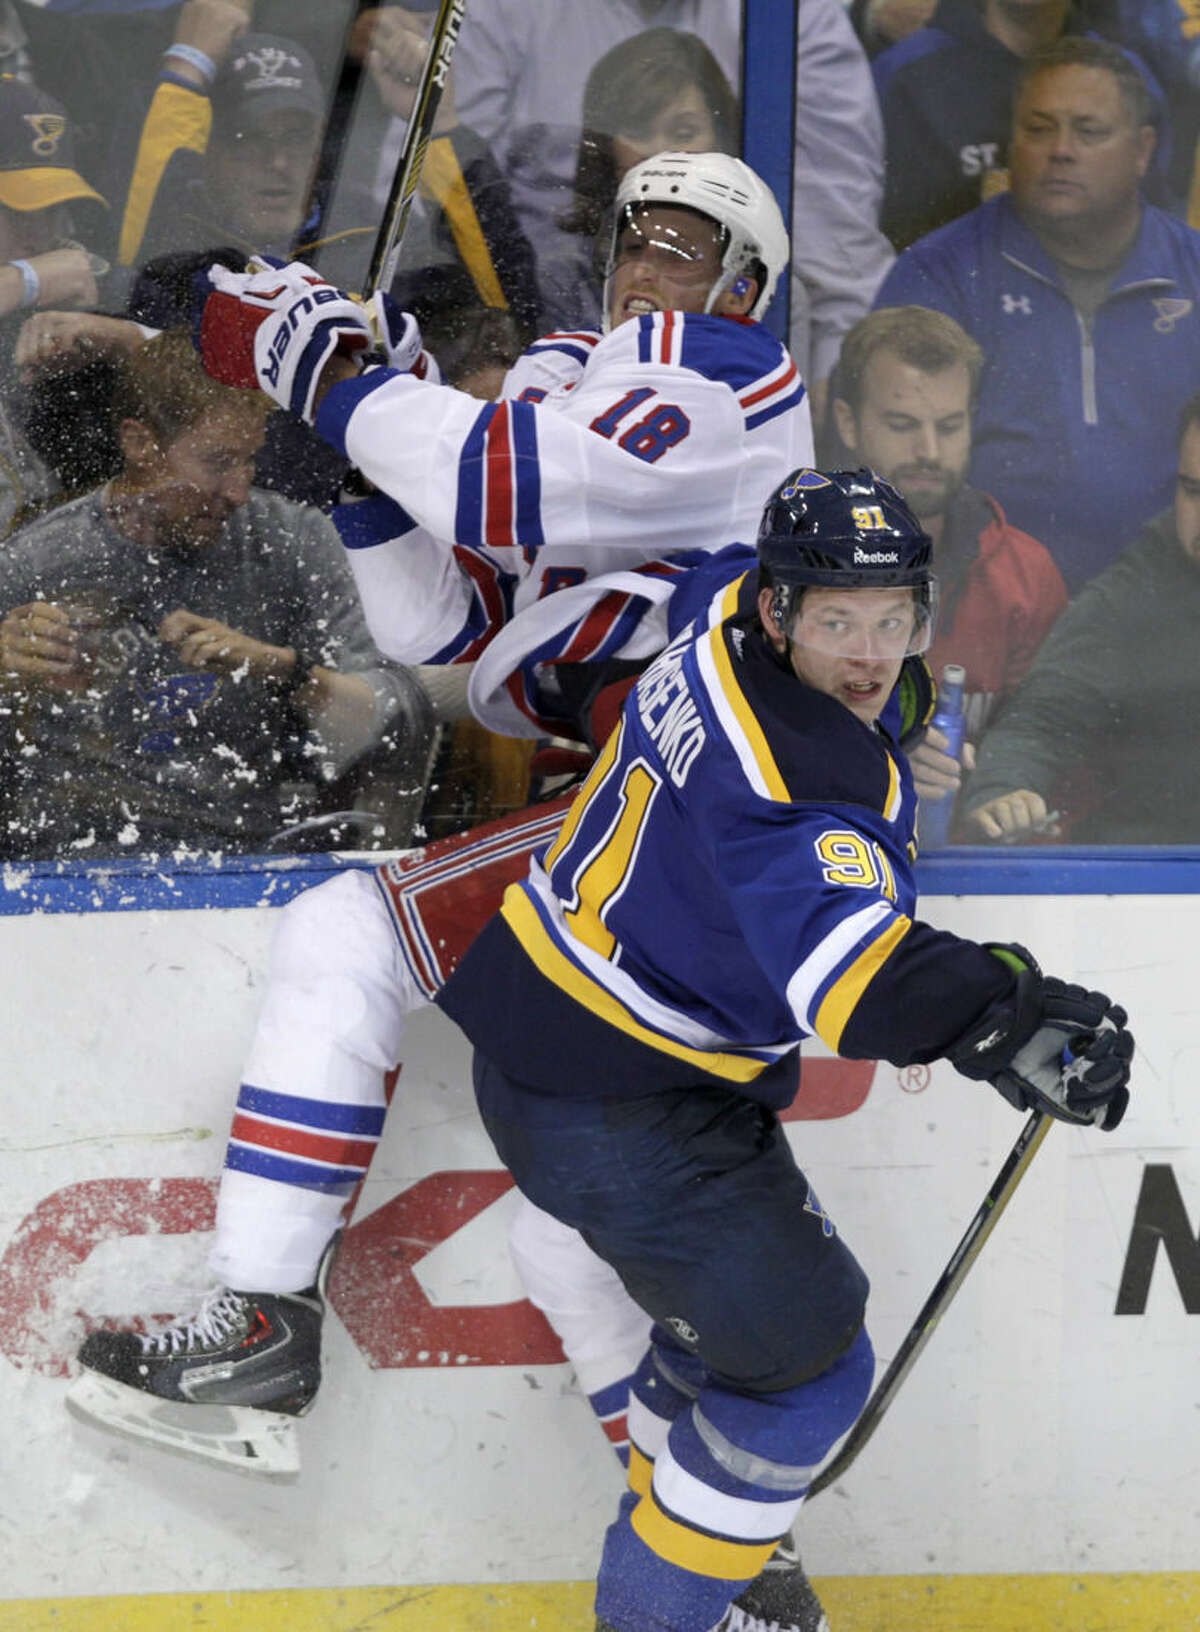 St. Louis Blues' Vladimir Tarasenko (91) slams New York Rangers' Marc Staal (18) into the boards in the third period of a NHL hockey game, Thursday, Oct. 9, 2014 in St. Louis. The Rangers beat the Blues 3-2. (AP Photo/Tom Gannam)